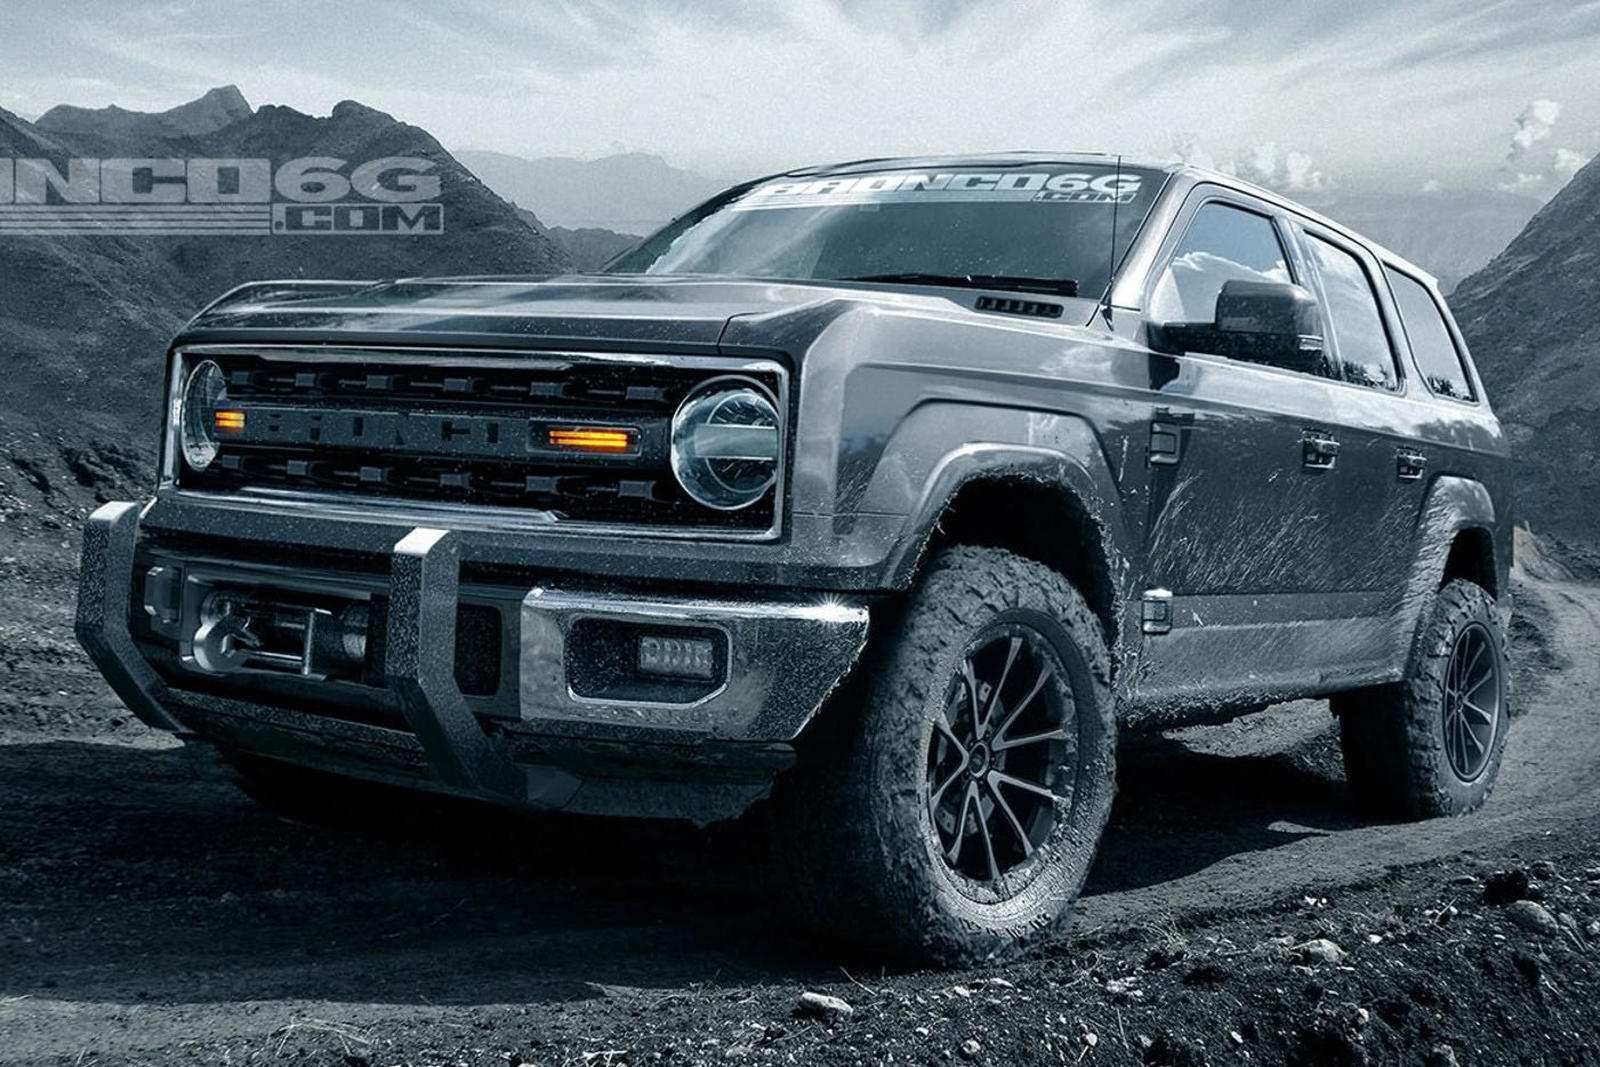 75 New Ford Bronco 2020 Images First Drive by Ford Bronco 2020 Images